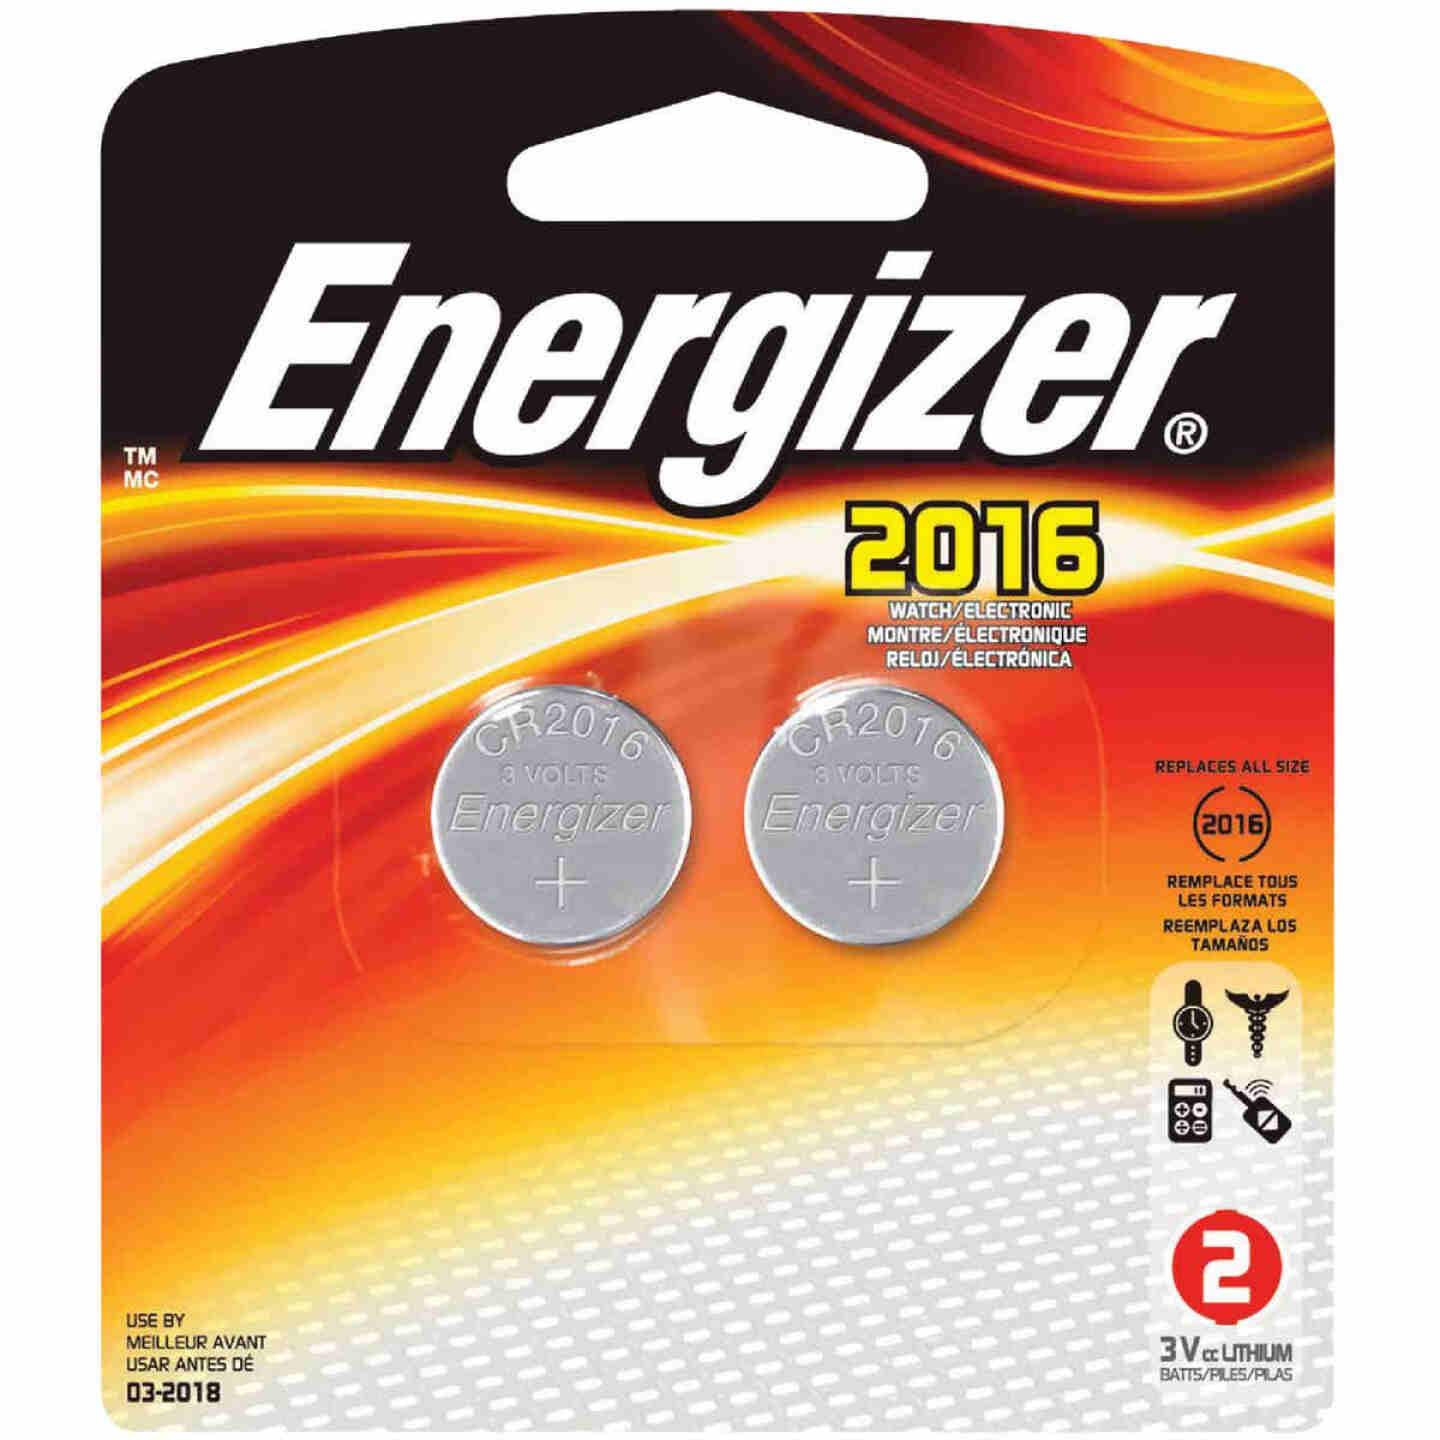 Energizer 2016 Lithium Coin Cell Battery (2-Pack) Image 1